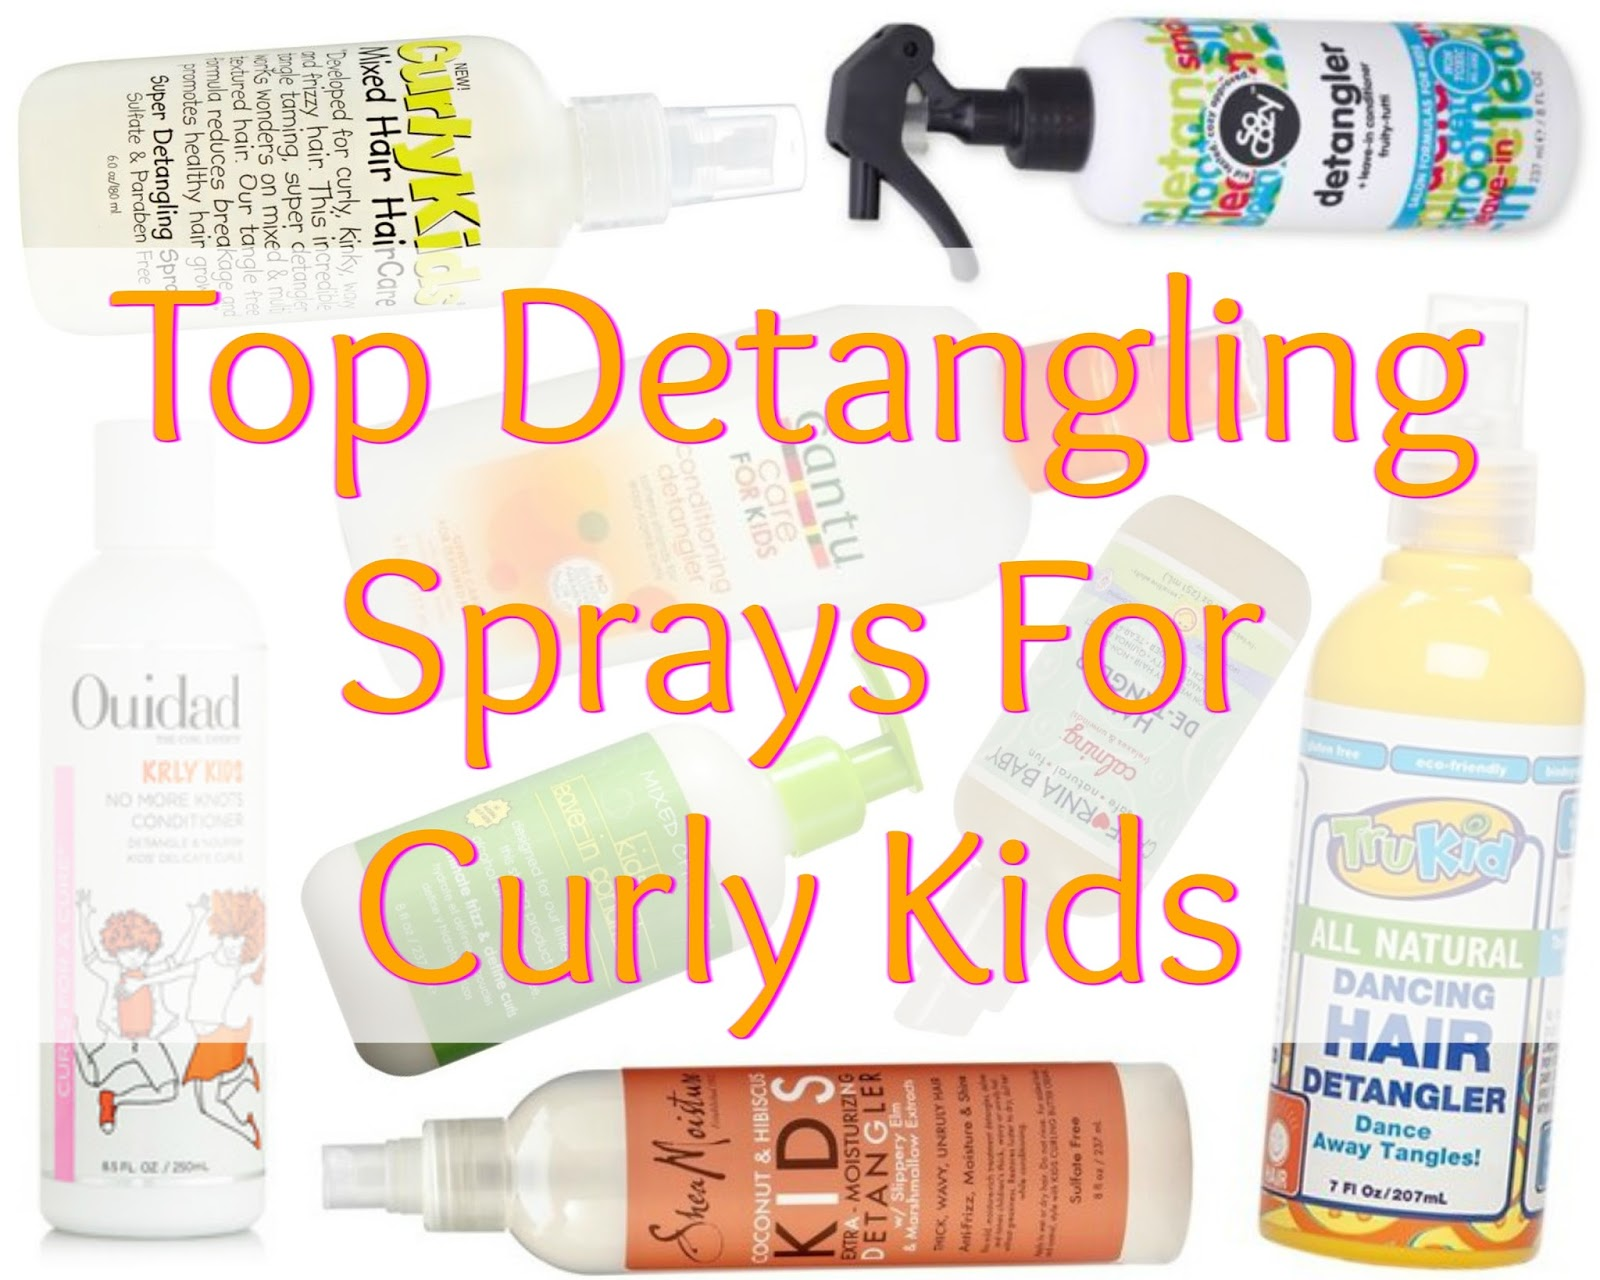 Click here to buy EDEN Body Works Kids Detangling Leave In Conditioner for your kids curls!